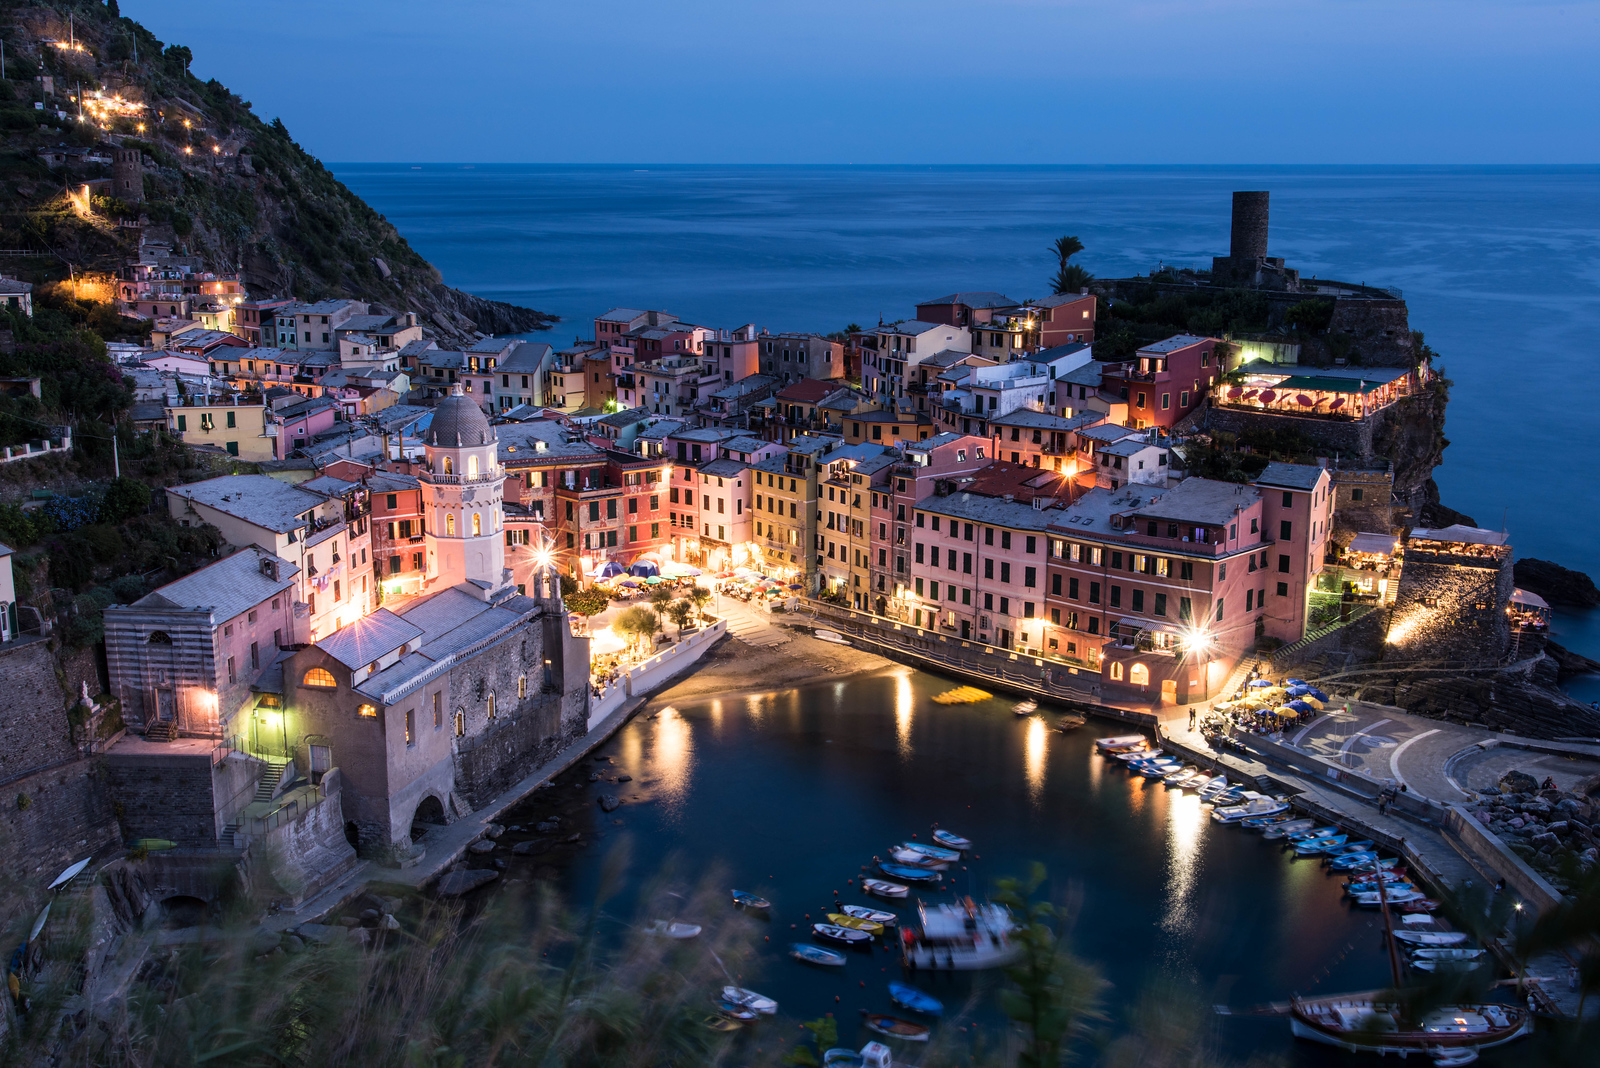 Vernazza, Cinque Terre at night.